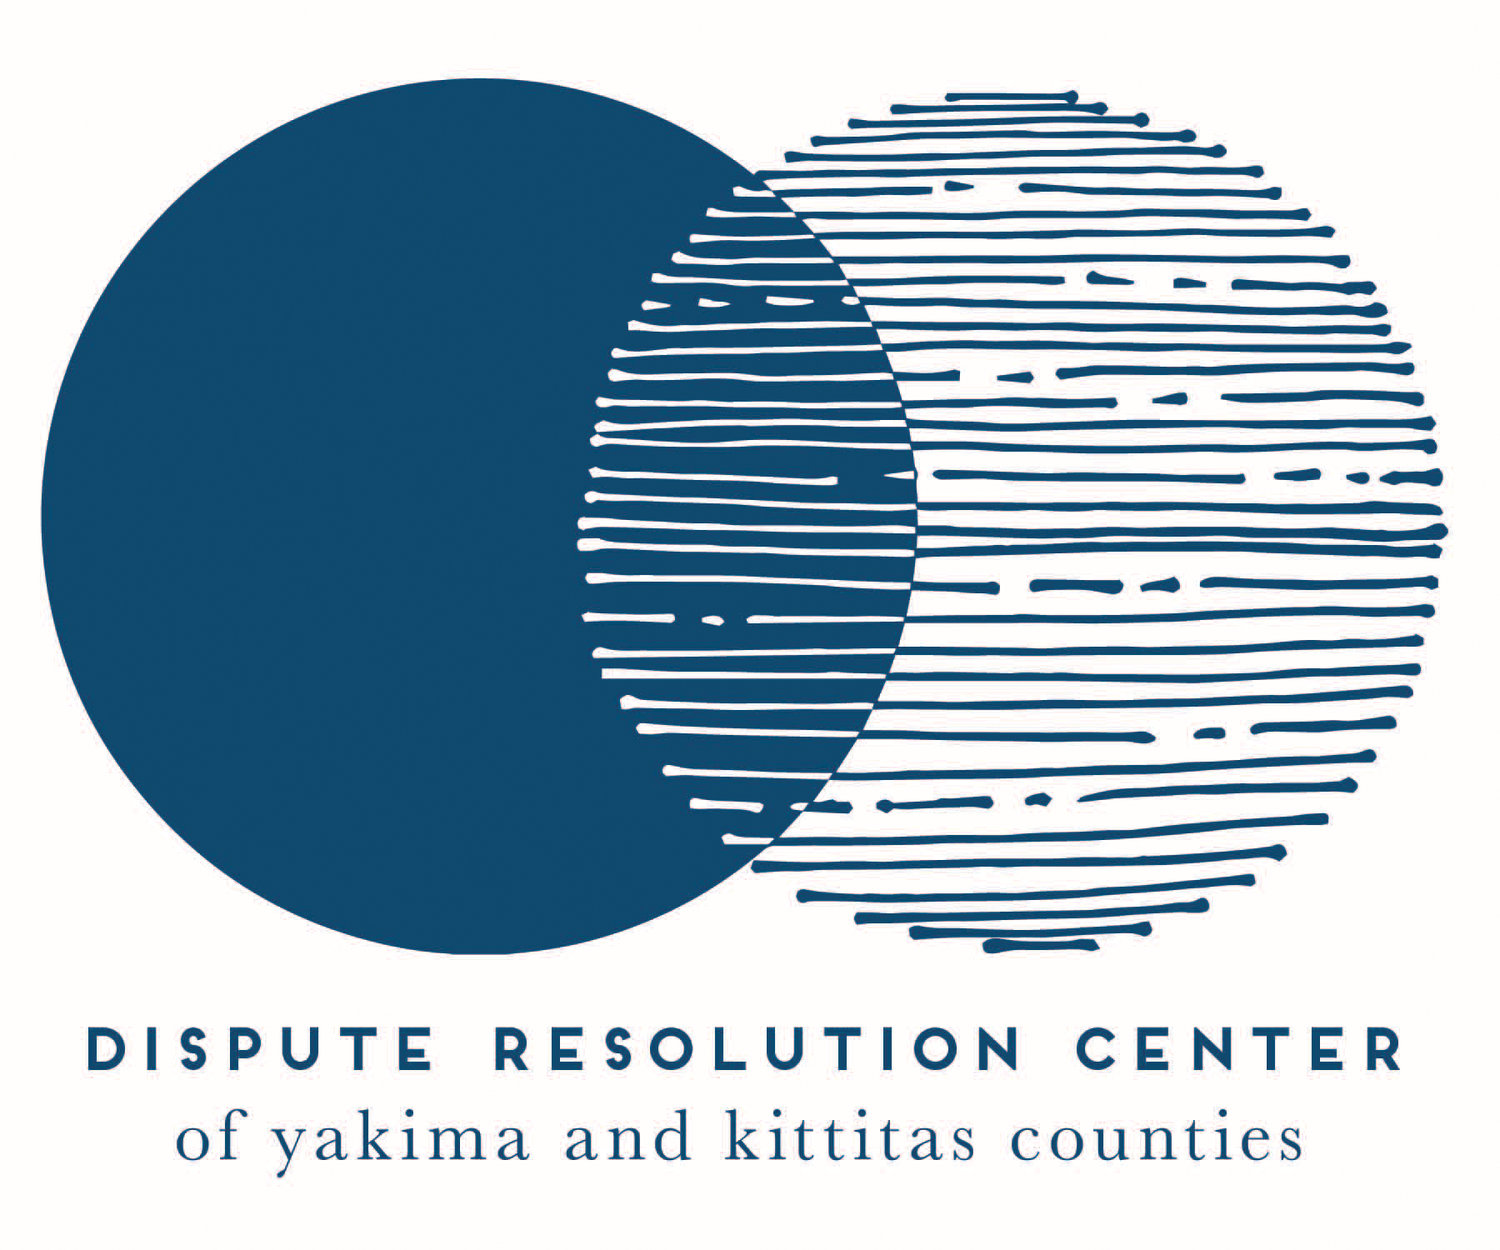 Dispute Resolution Center